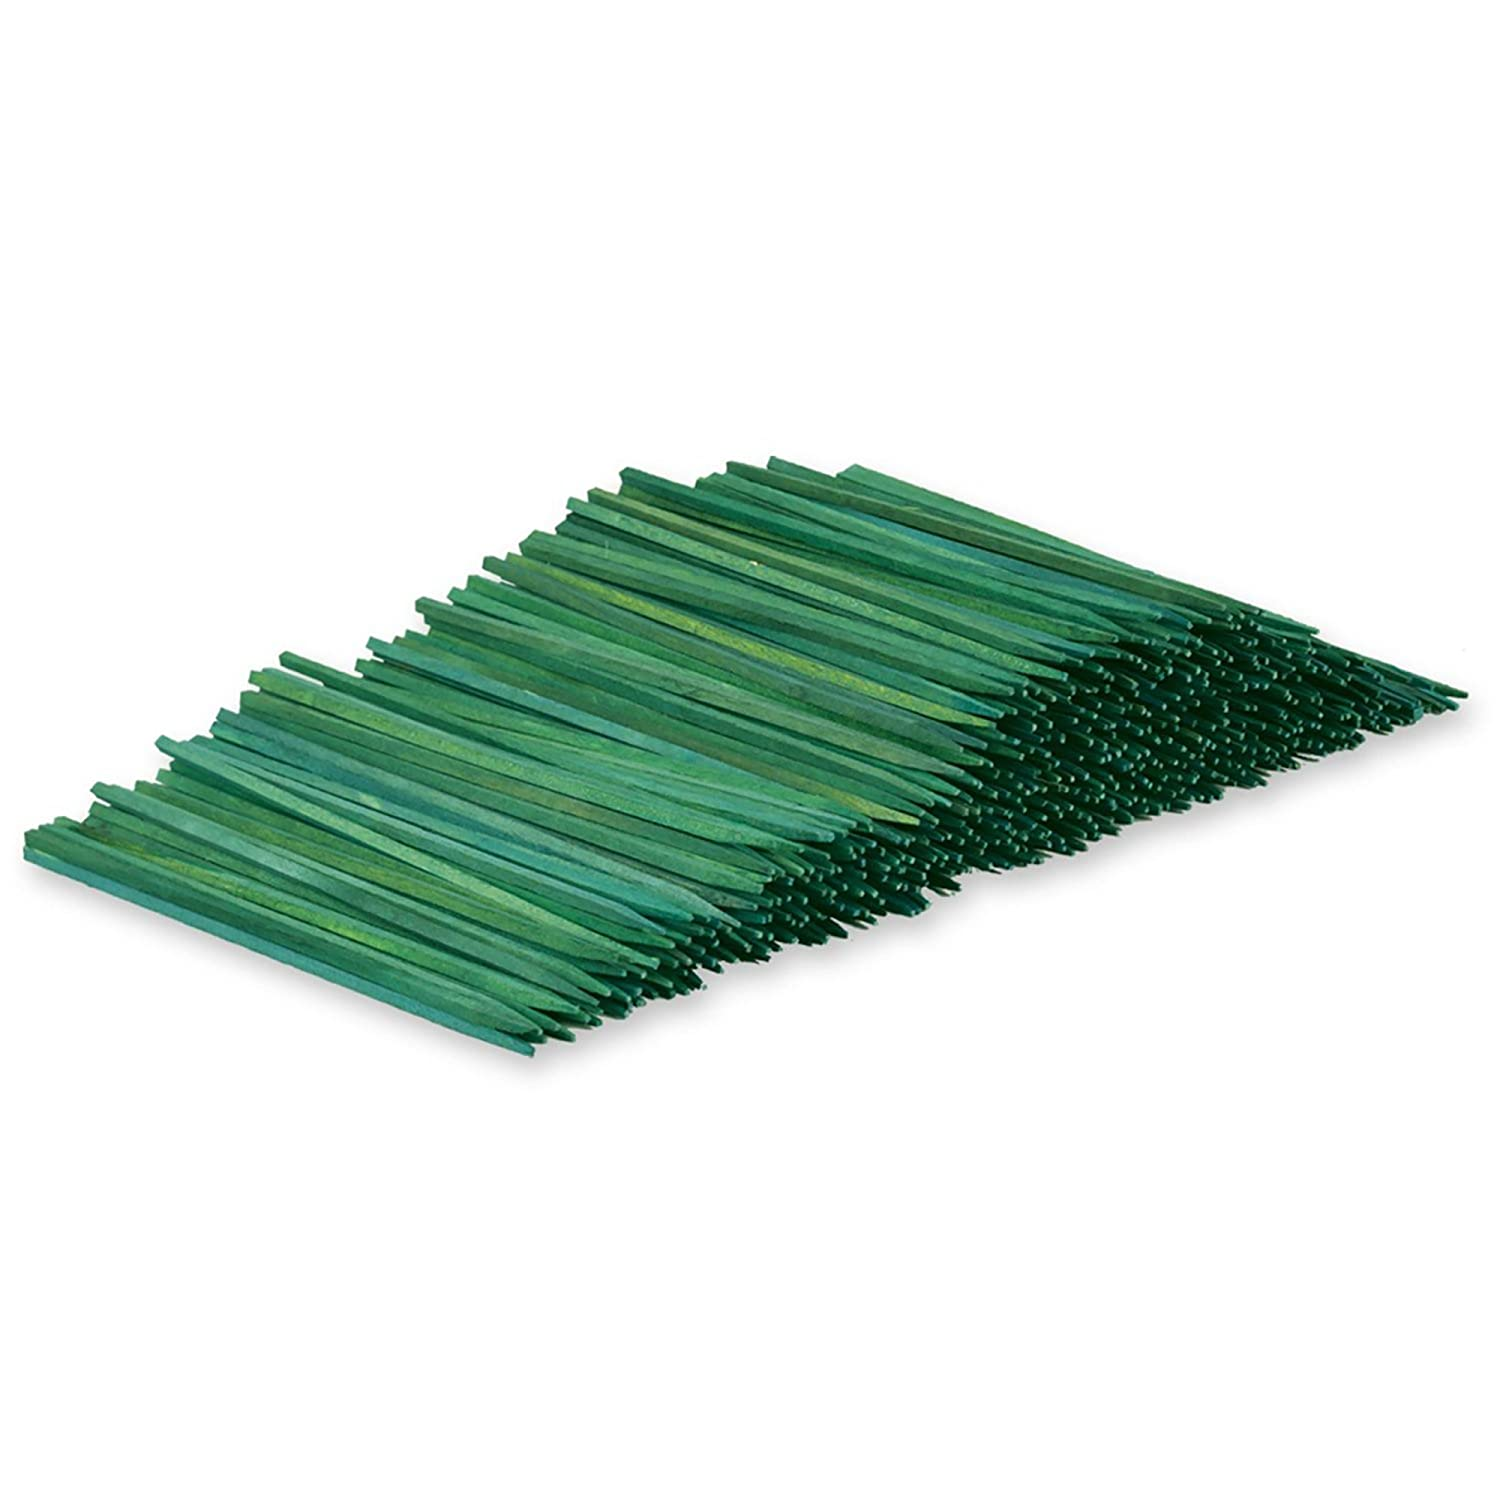 Wooden Floral Plant Support Craft Picks Green Wood Stakes 100 Count w/ Flower Crafting eGuide (8 Inch)